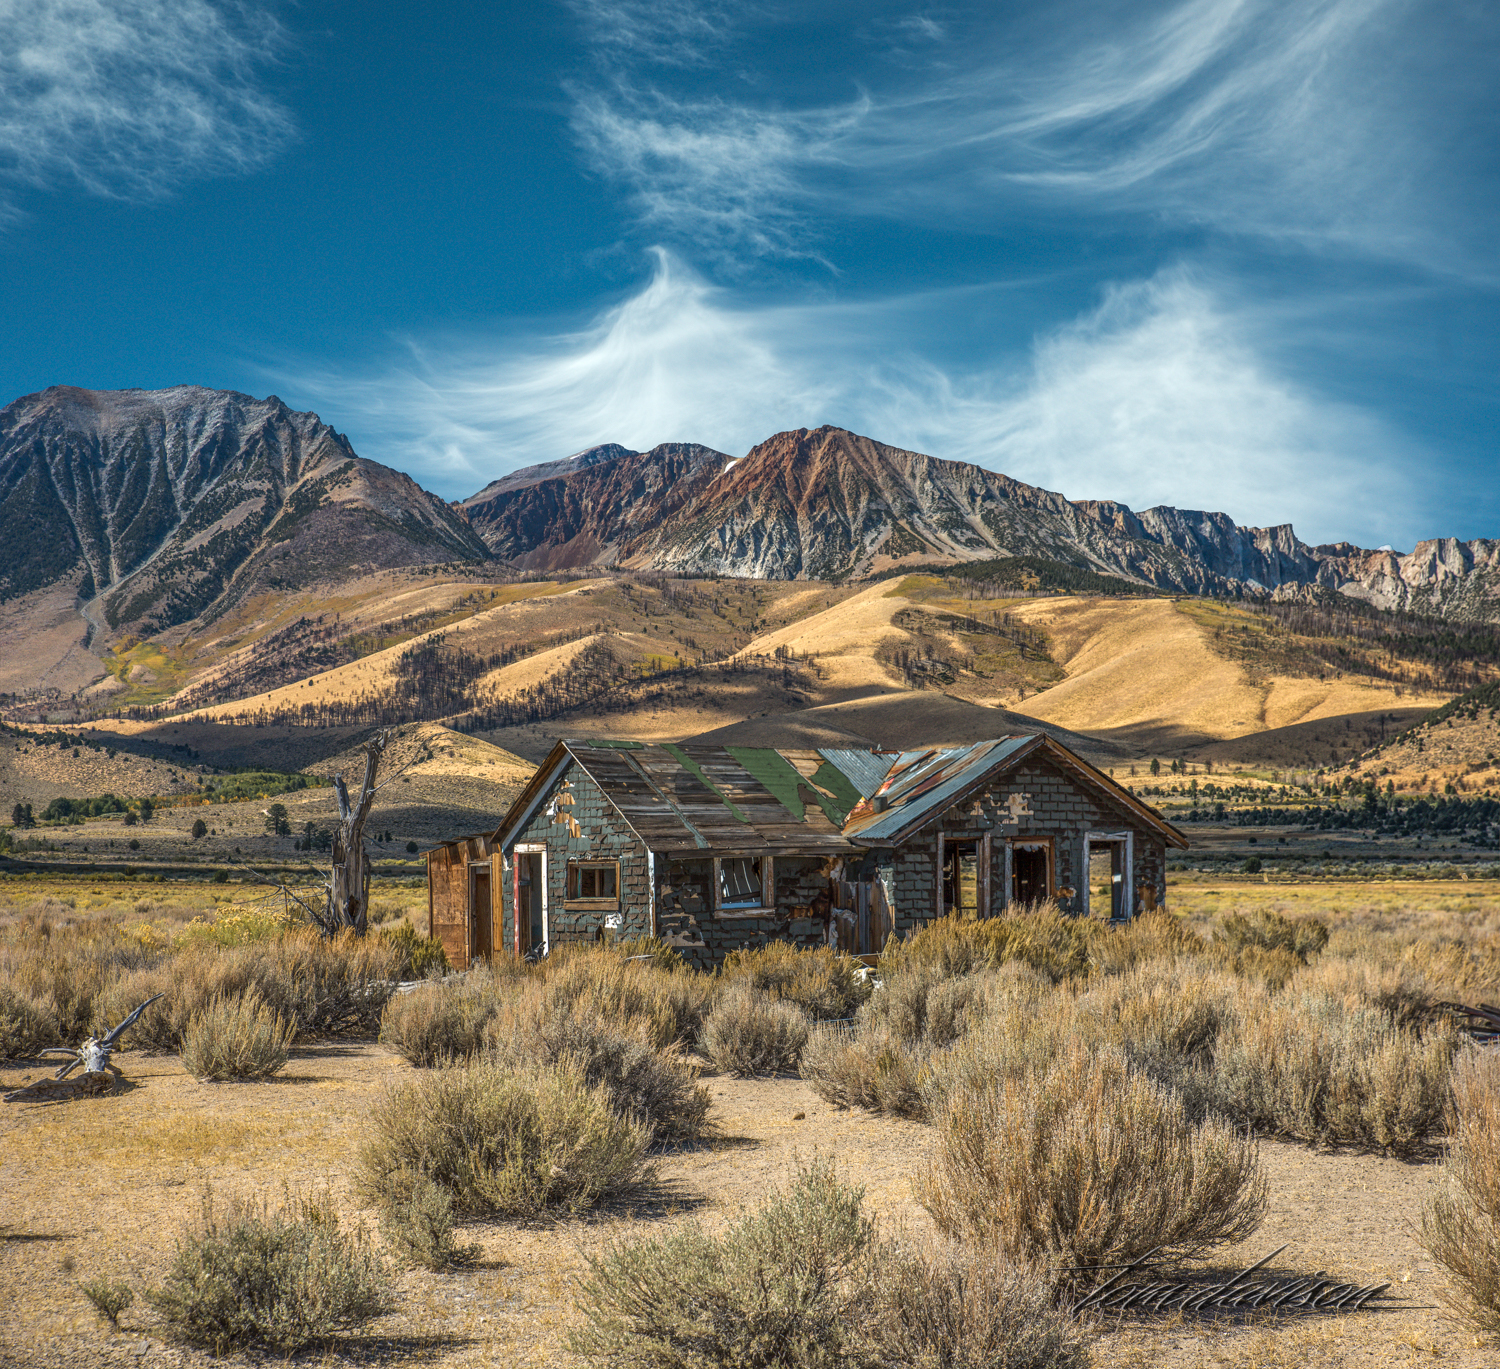 Much photographed (we stopped at least 5 times) old house along Highway 395.